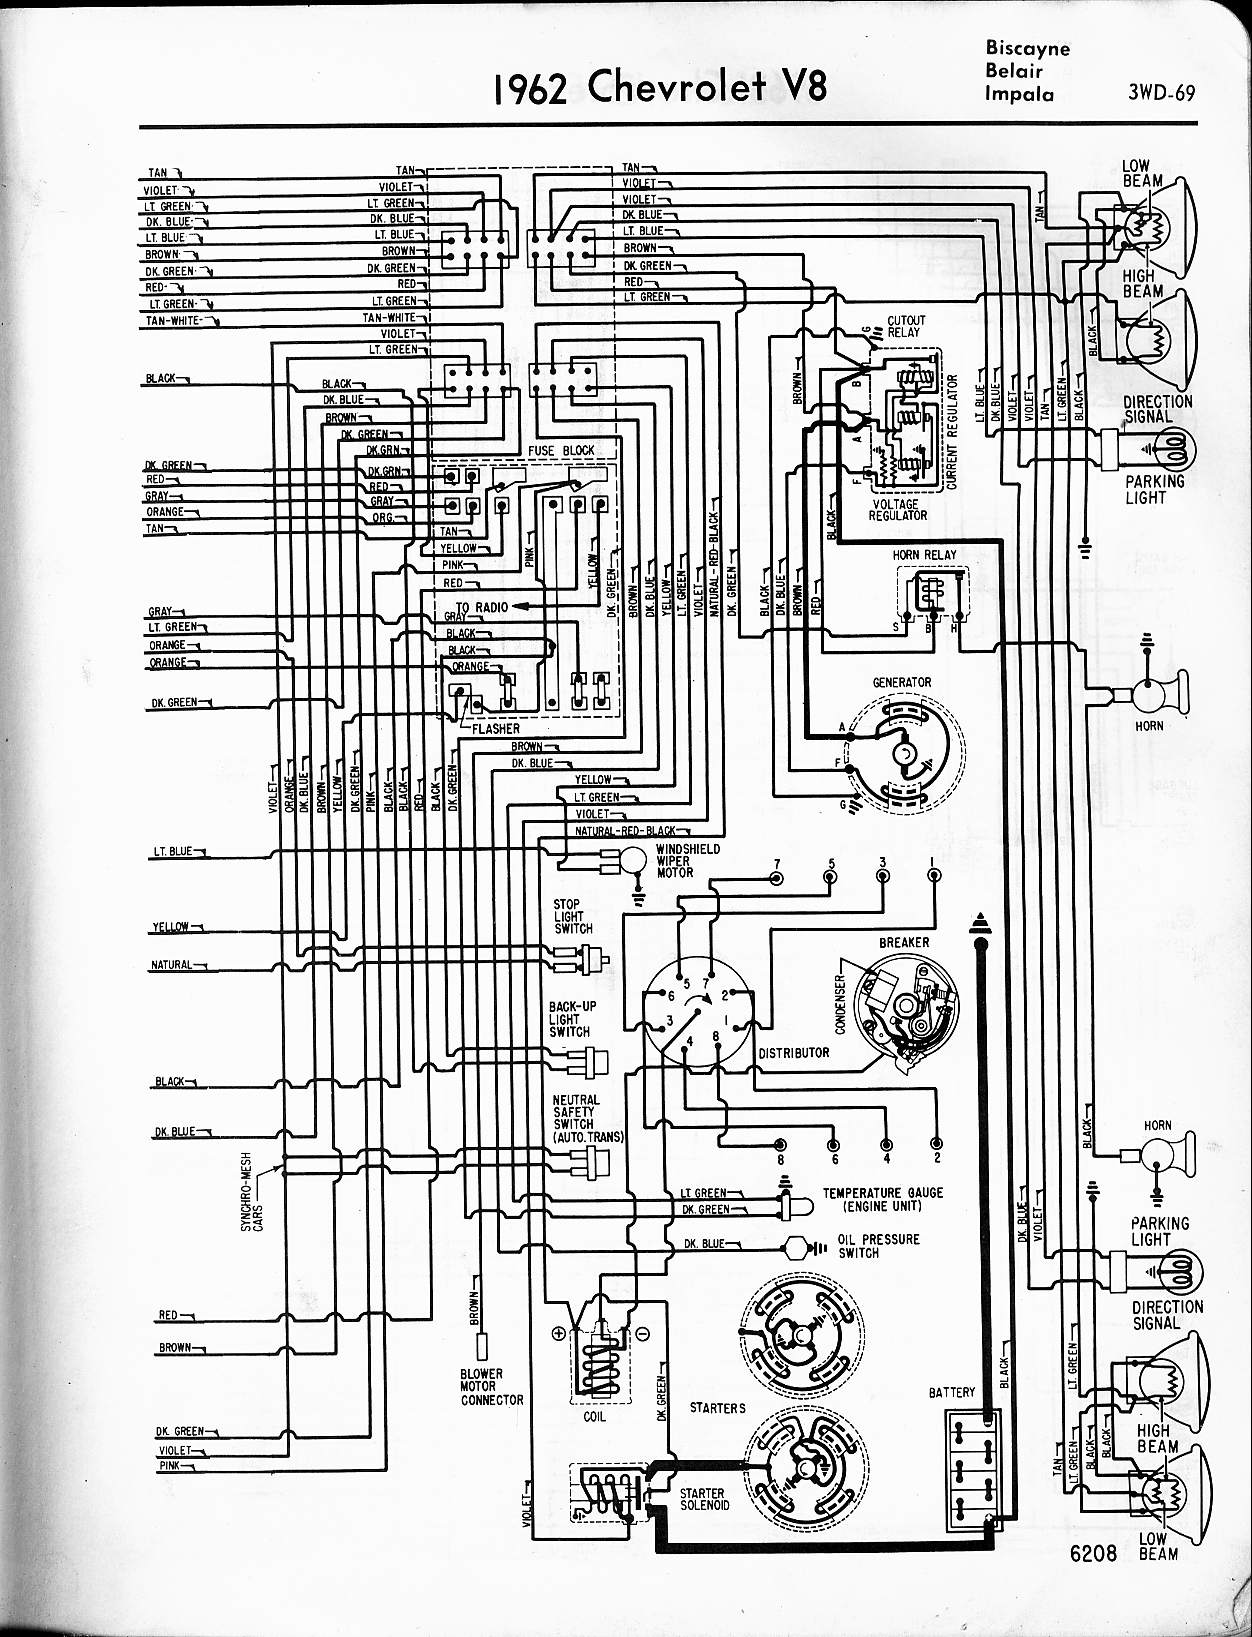 MWireChev62_3WD 069 57 65 chevy wiring diagrams 1962 chevy truck wiring diagram at readyjetset.co